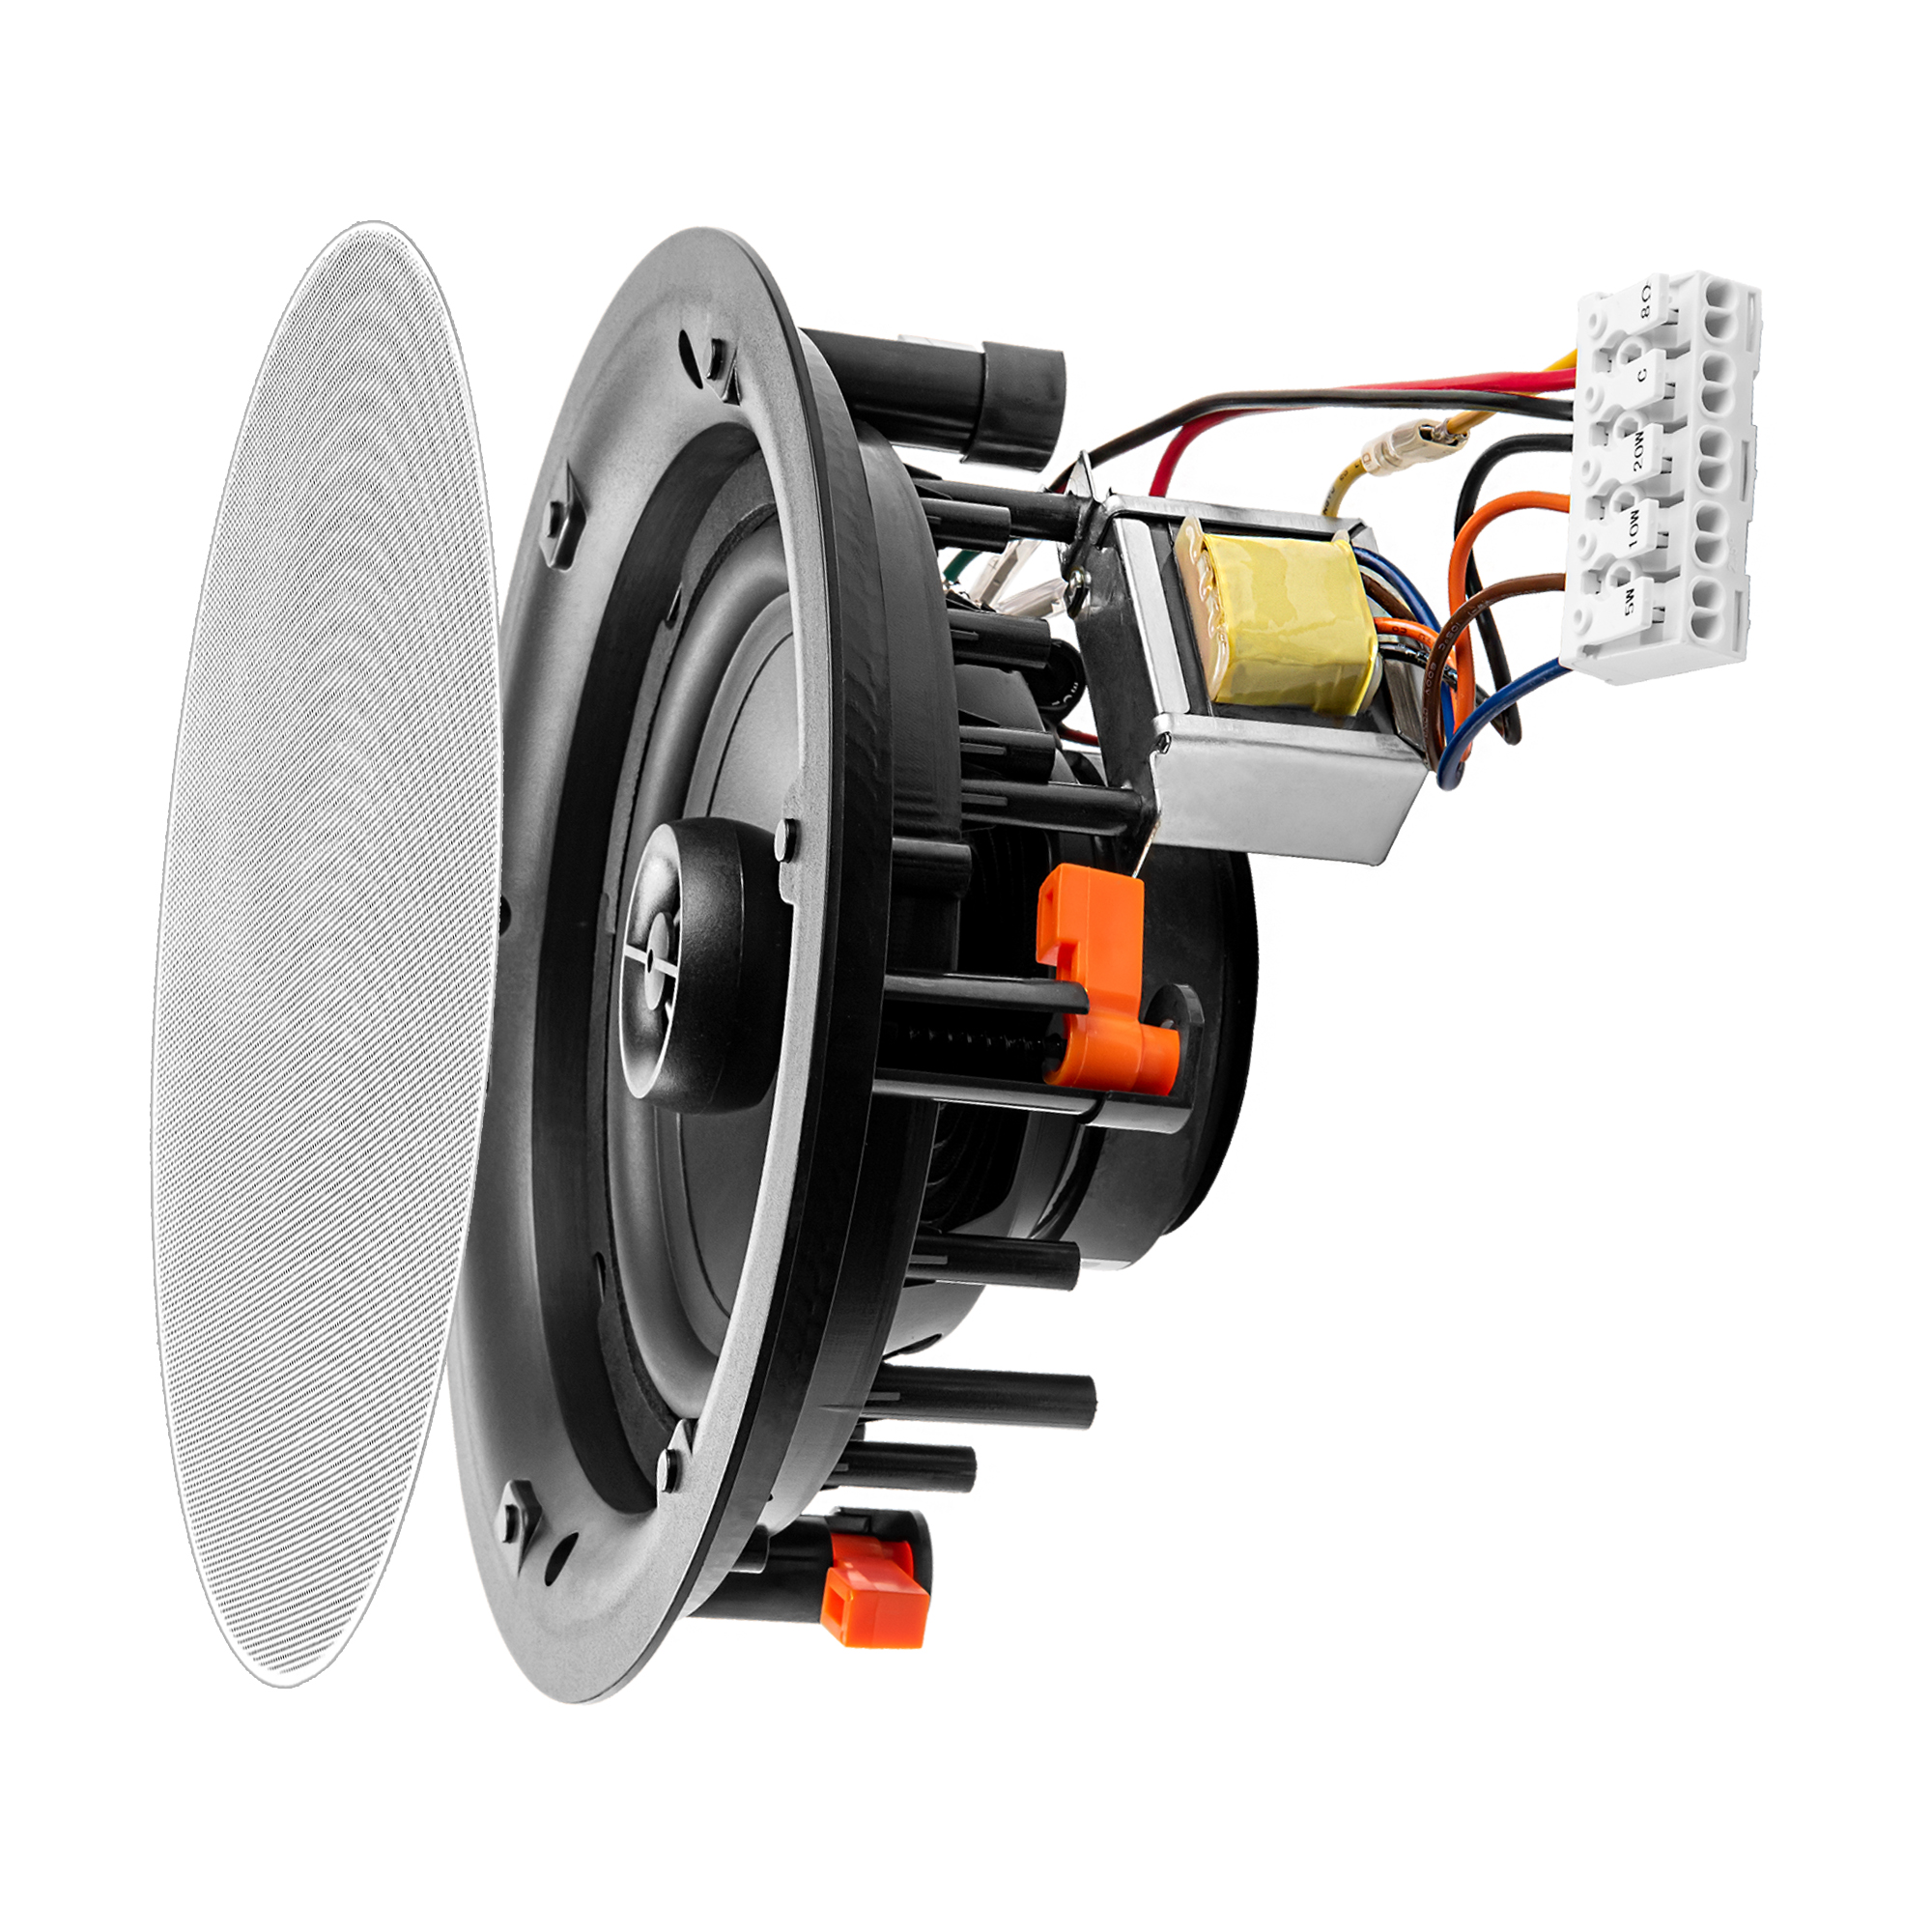 "ACE640T 6.5"" 100W Trimless 70V/8-ohm Commercial Ceiling Speaker, Easy Connect Terminal Block, Single"